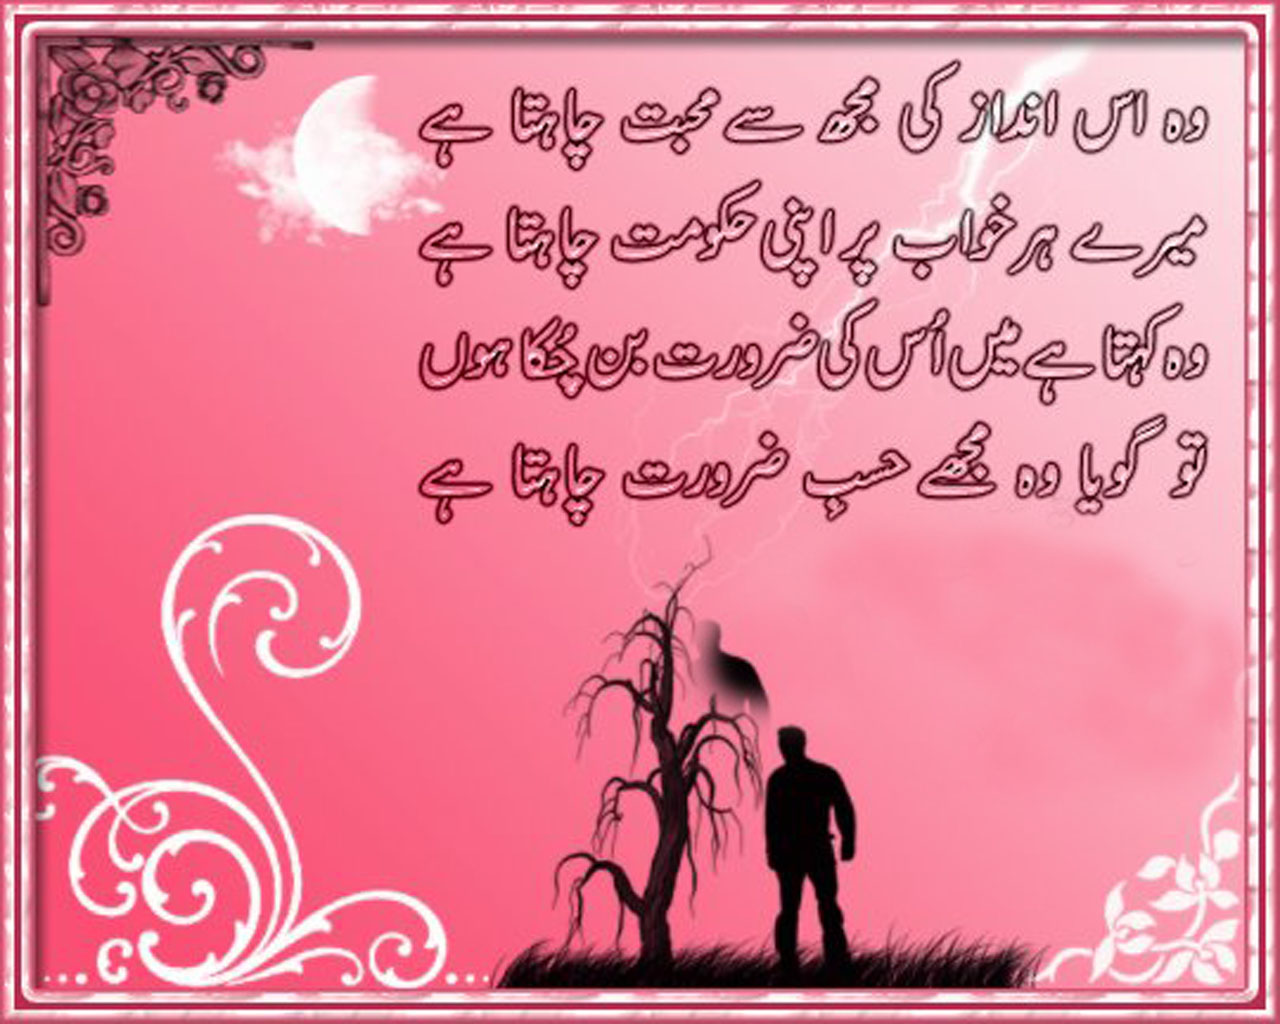 49+] Sad Urdu Poetry Wallpaper on WallpaperSafari